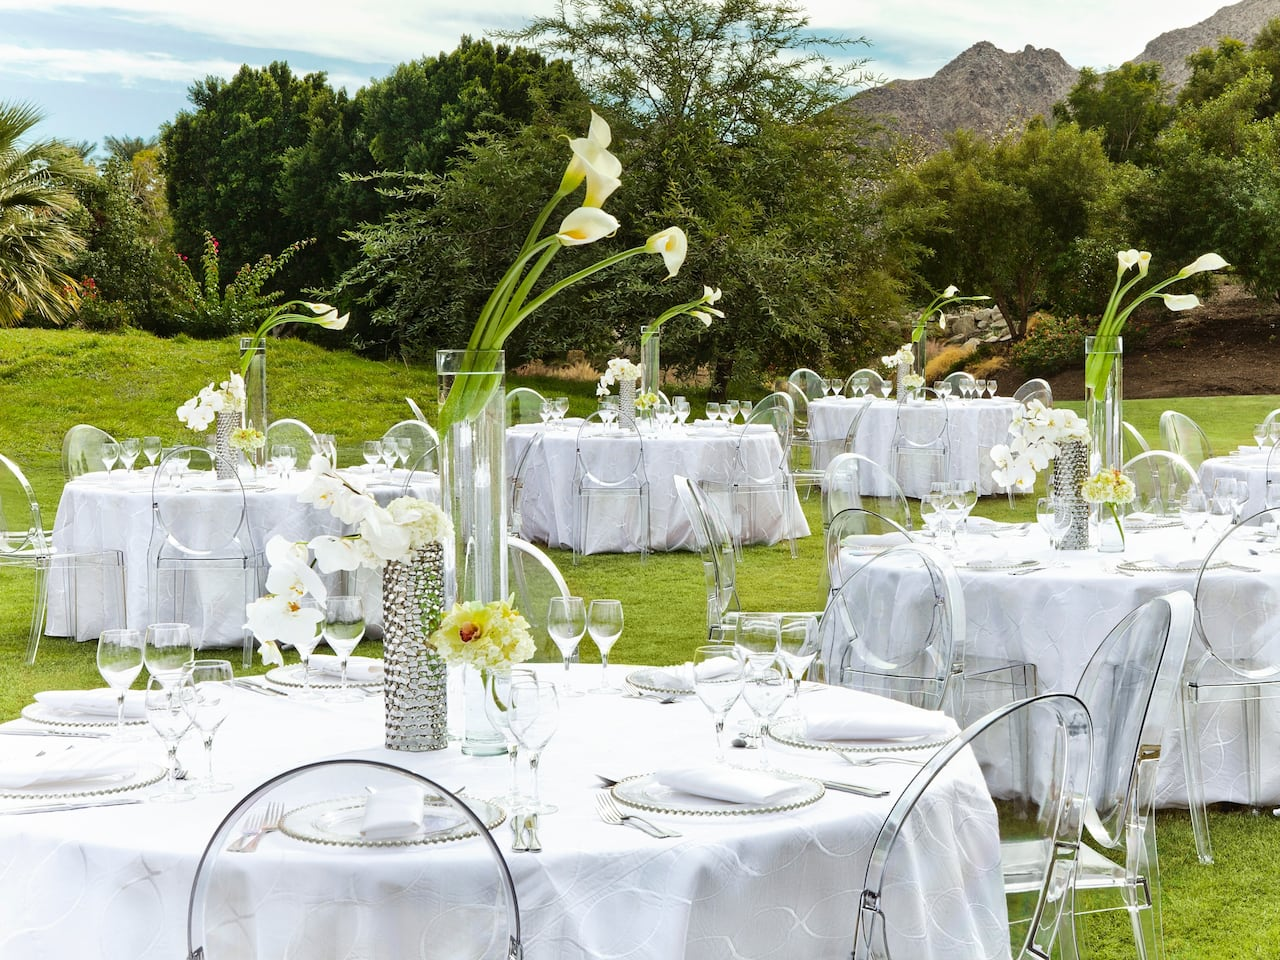 An outdoor wedding reception with white draped tables, flowers, and wine glasses in Palm Springs